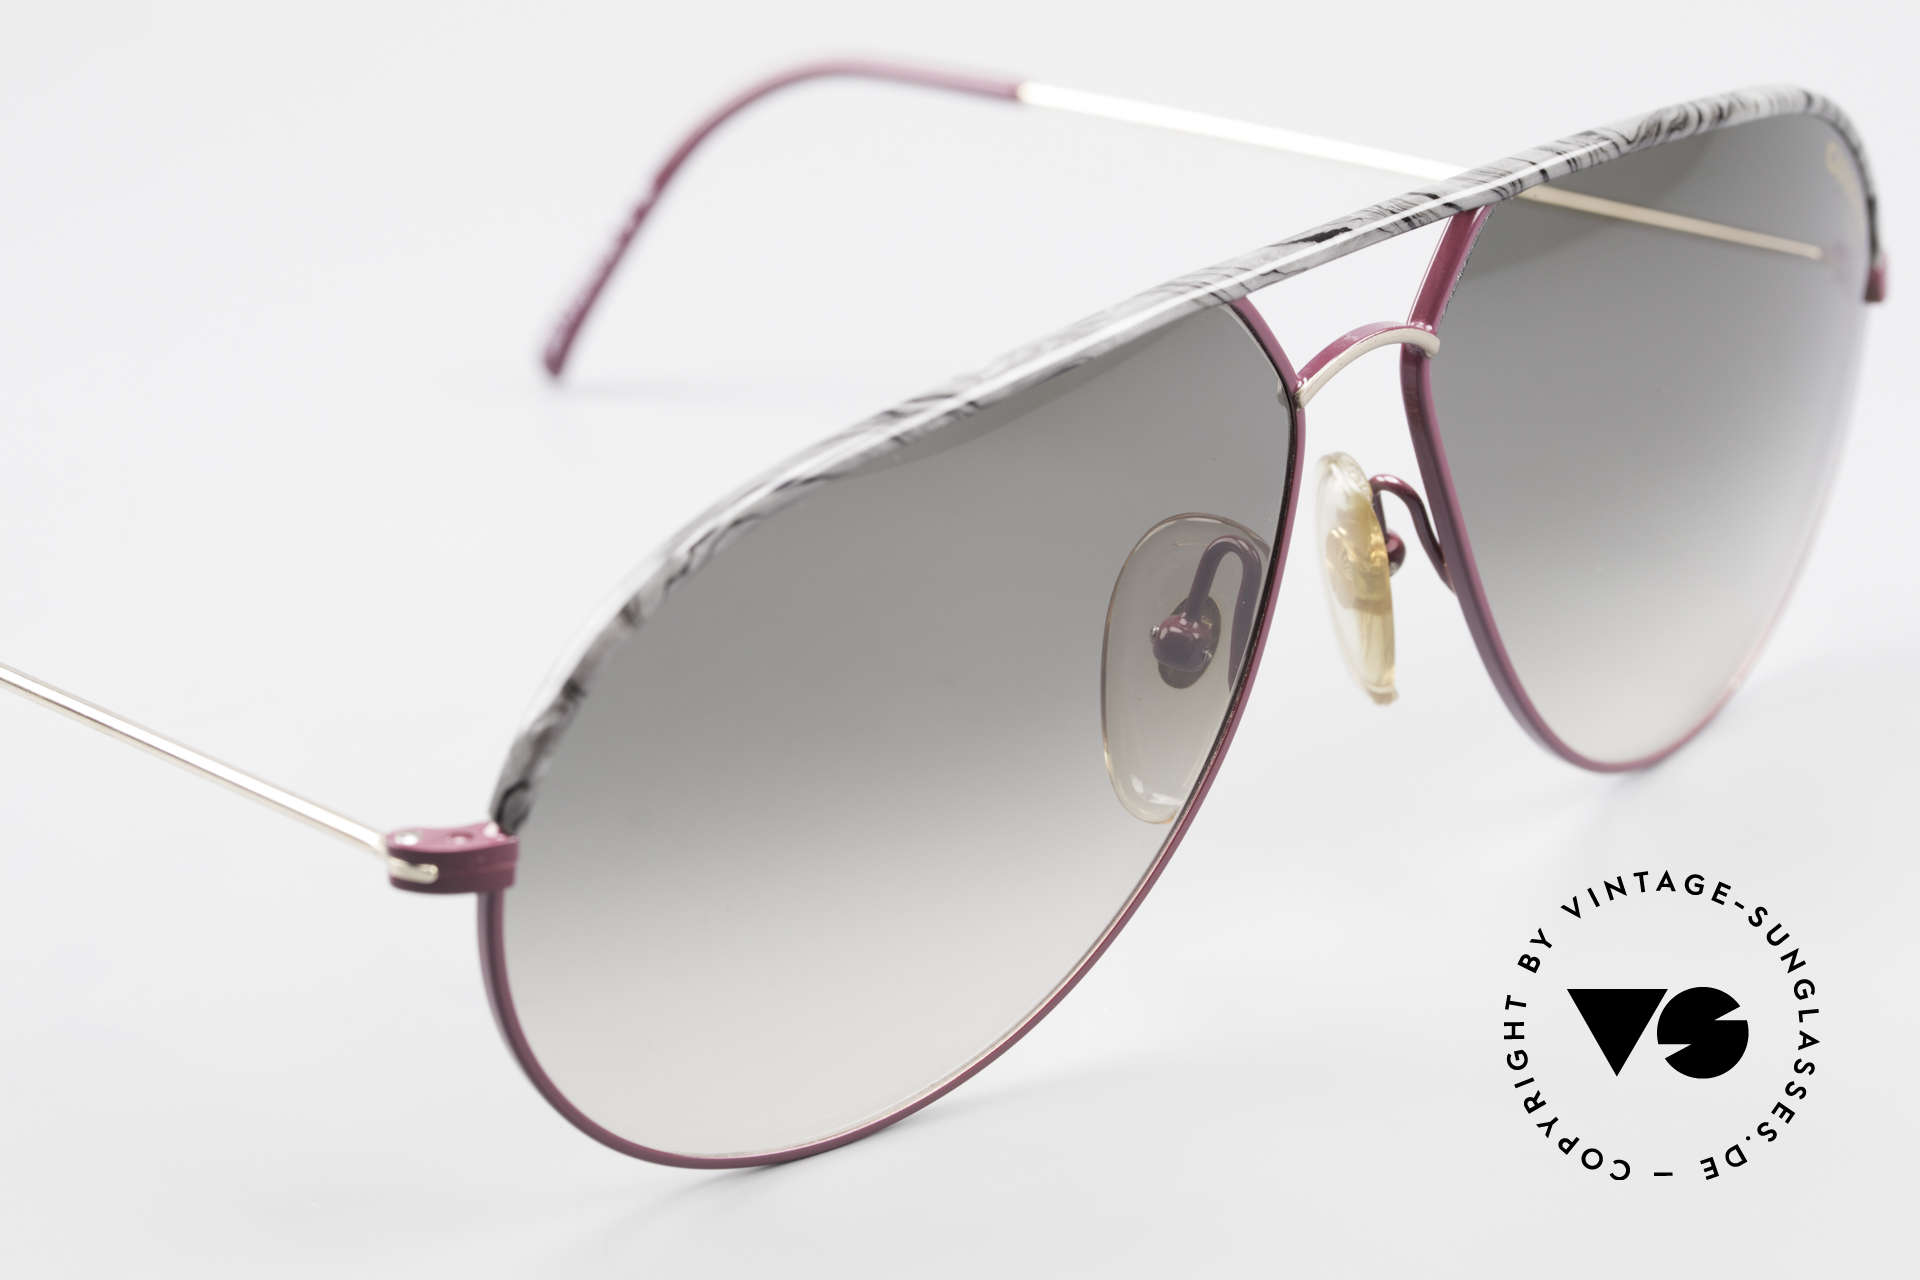 Carrera 5428 Rare Old Vintage 80's Shades, never worn (like all our vintage Carrera sunglasses), Made for Men and Women